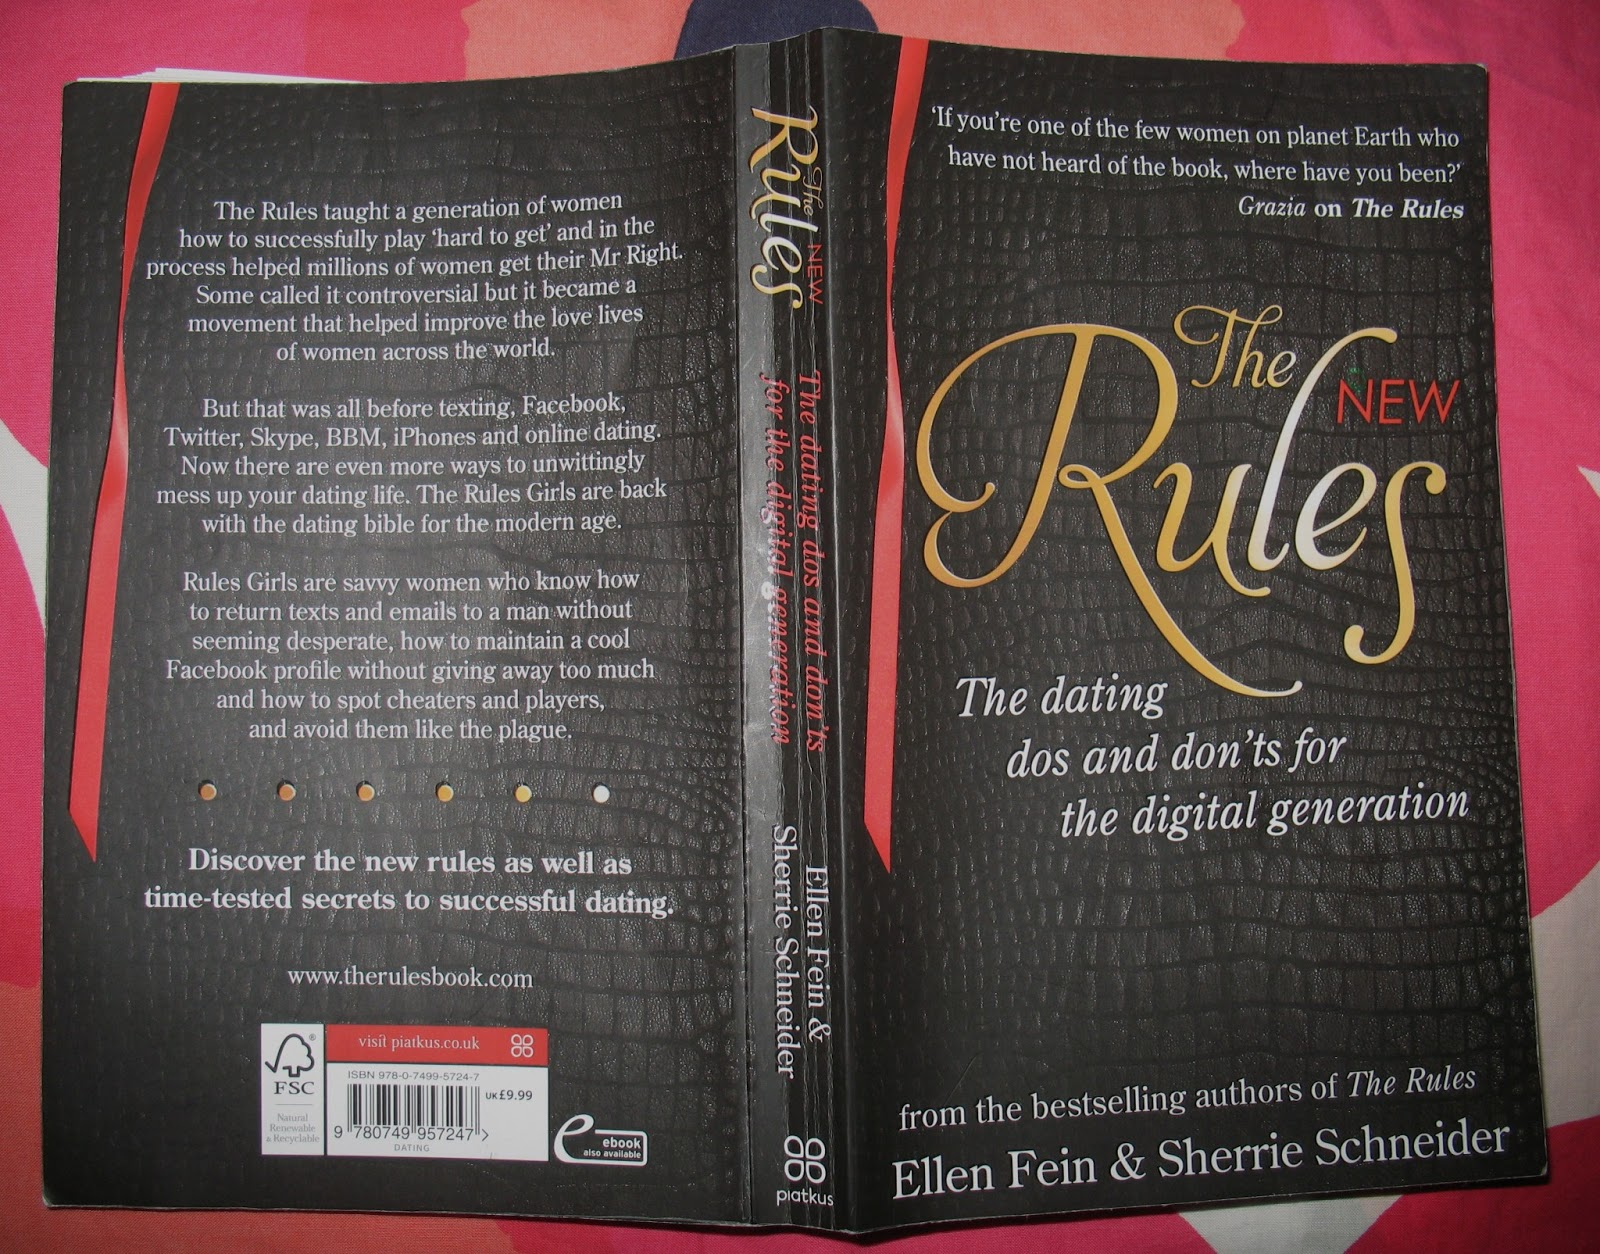 the new rules the dating dos and donts The new rules: the dating dos and don'ts for the digital generation from the bestselling authors of the rules ebook: ellen fein, sherrie schneider: amazoncomau: kindle store.